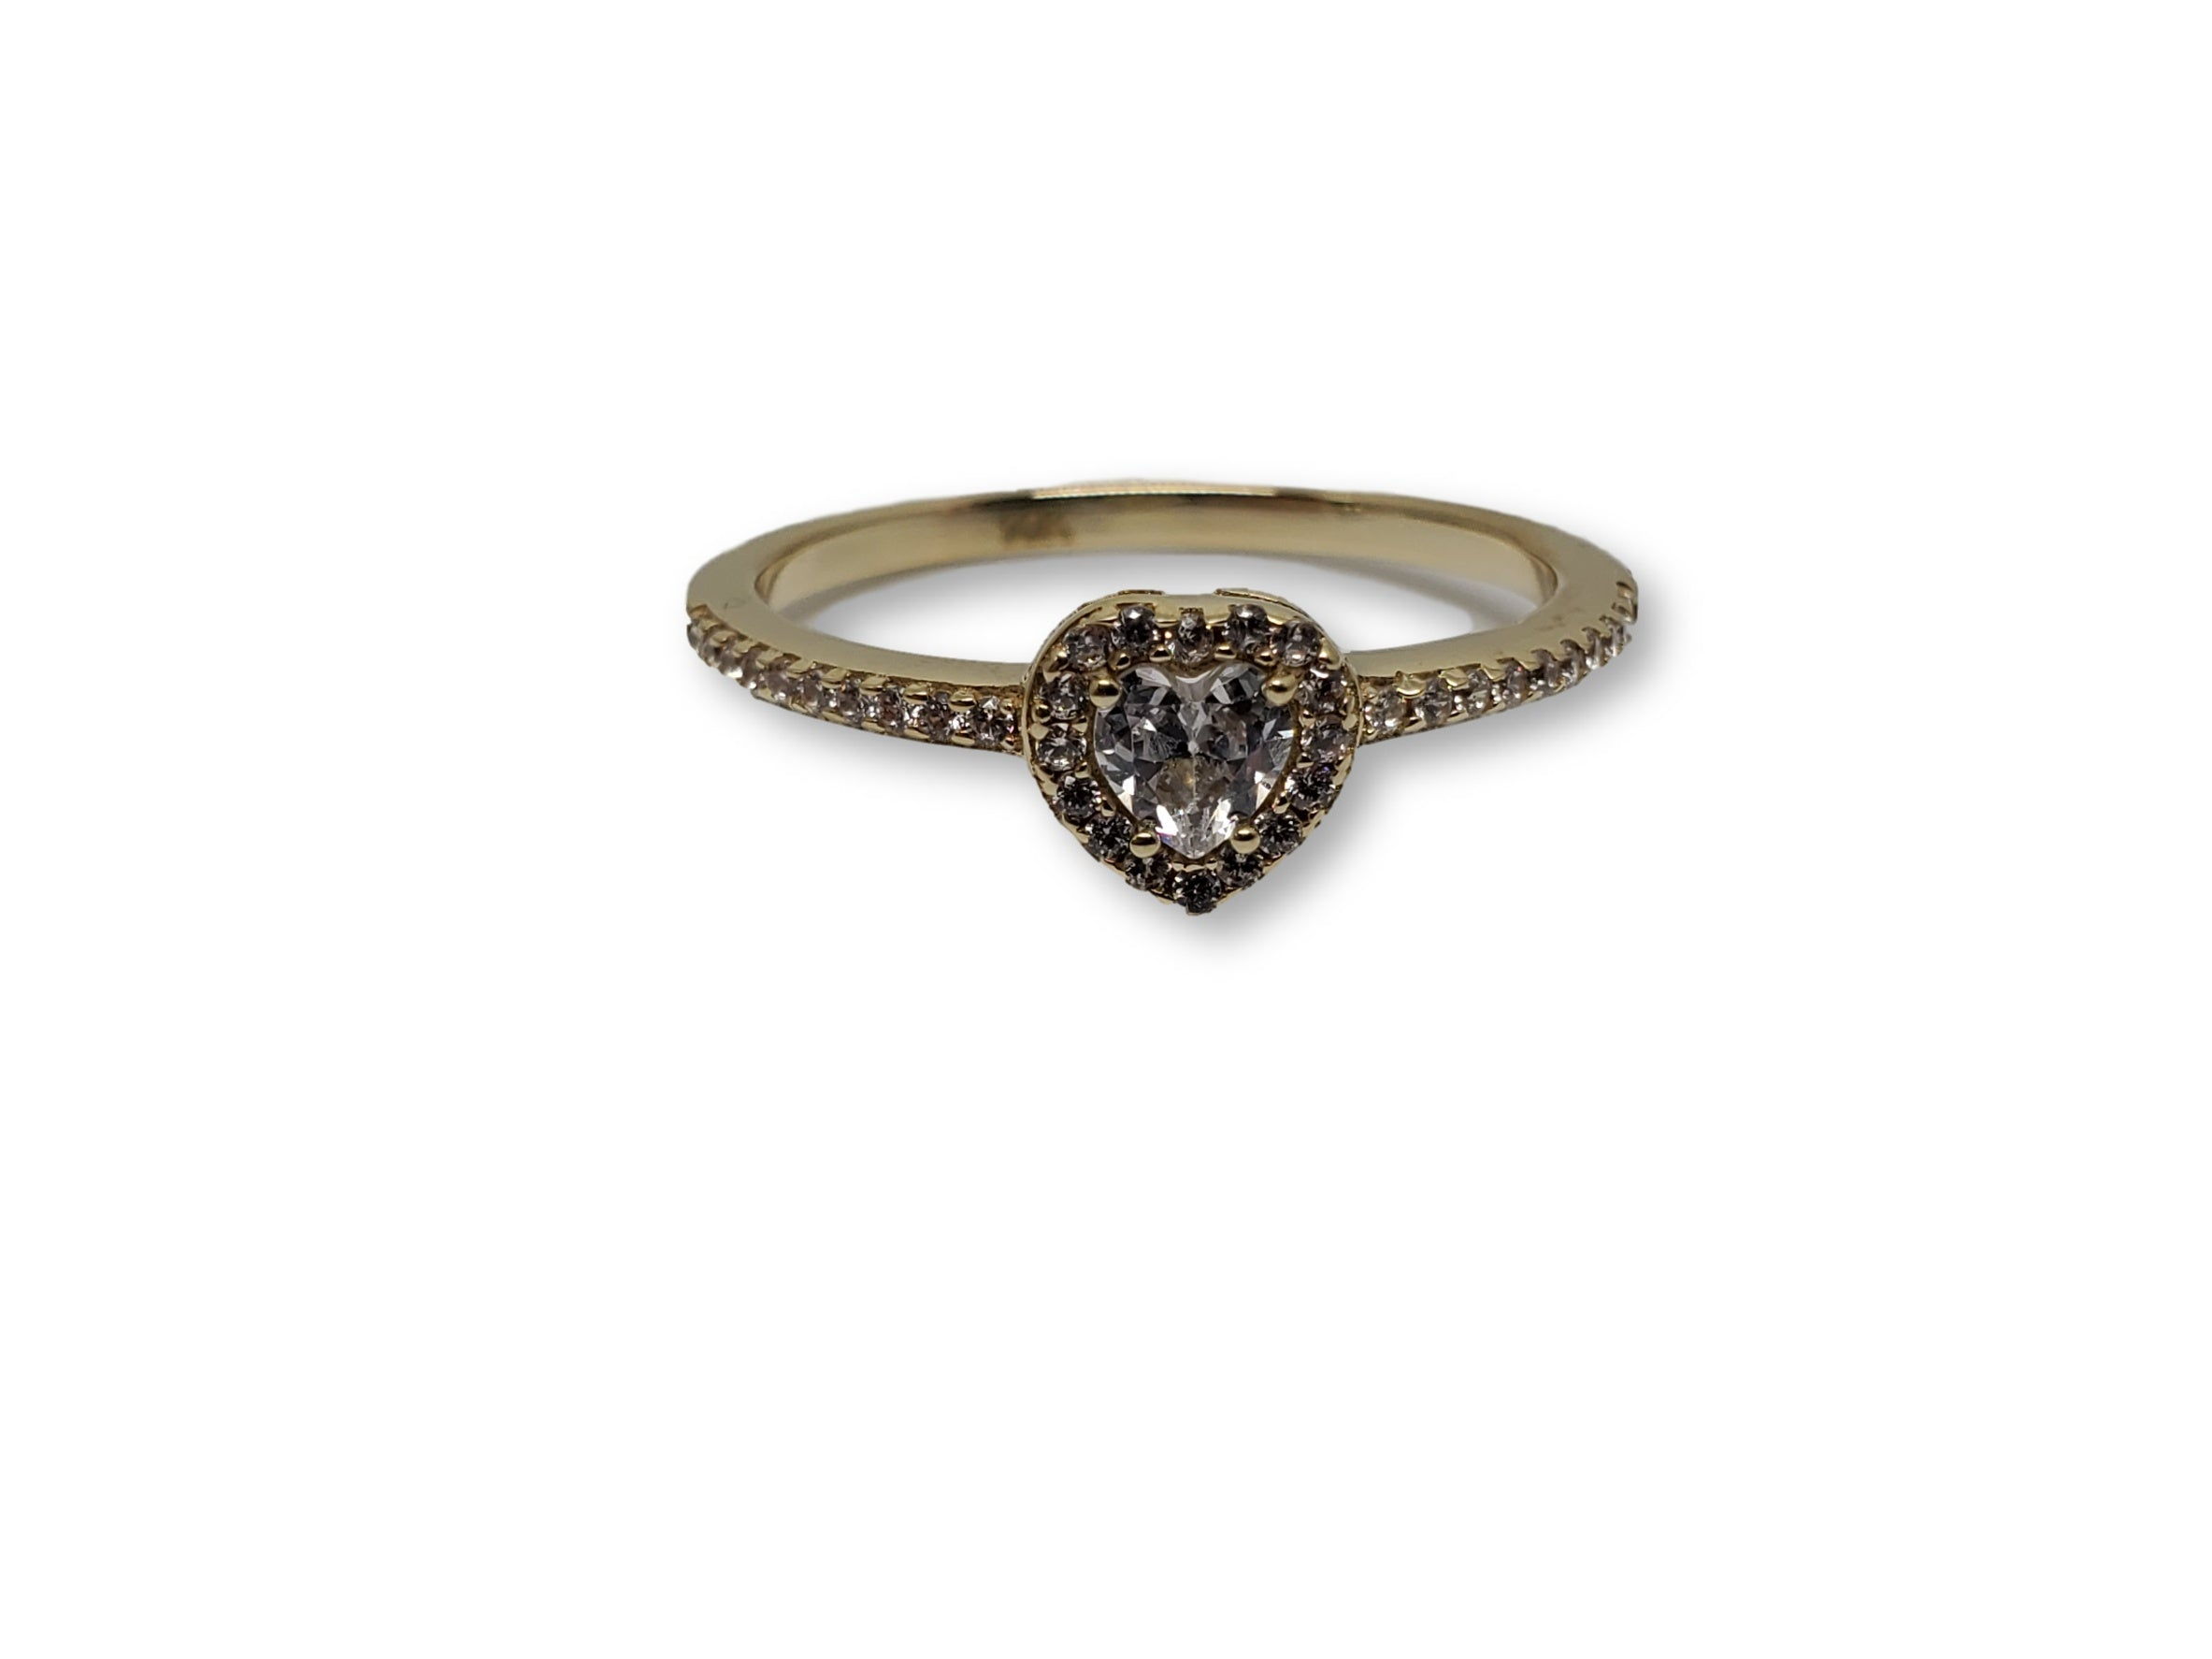 Bague coeur en or 10k model 2020